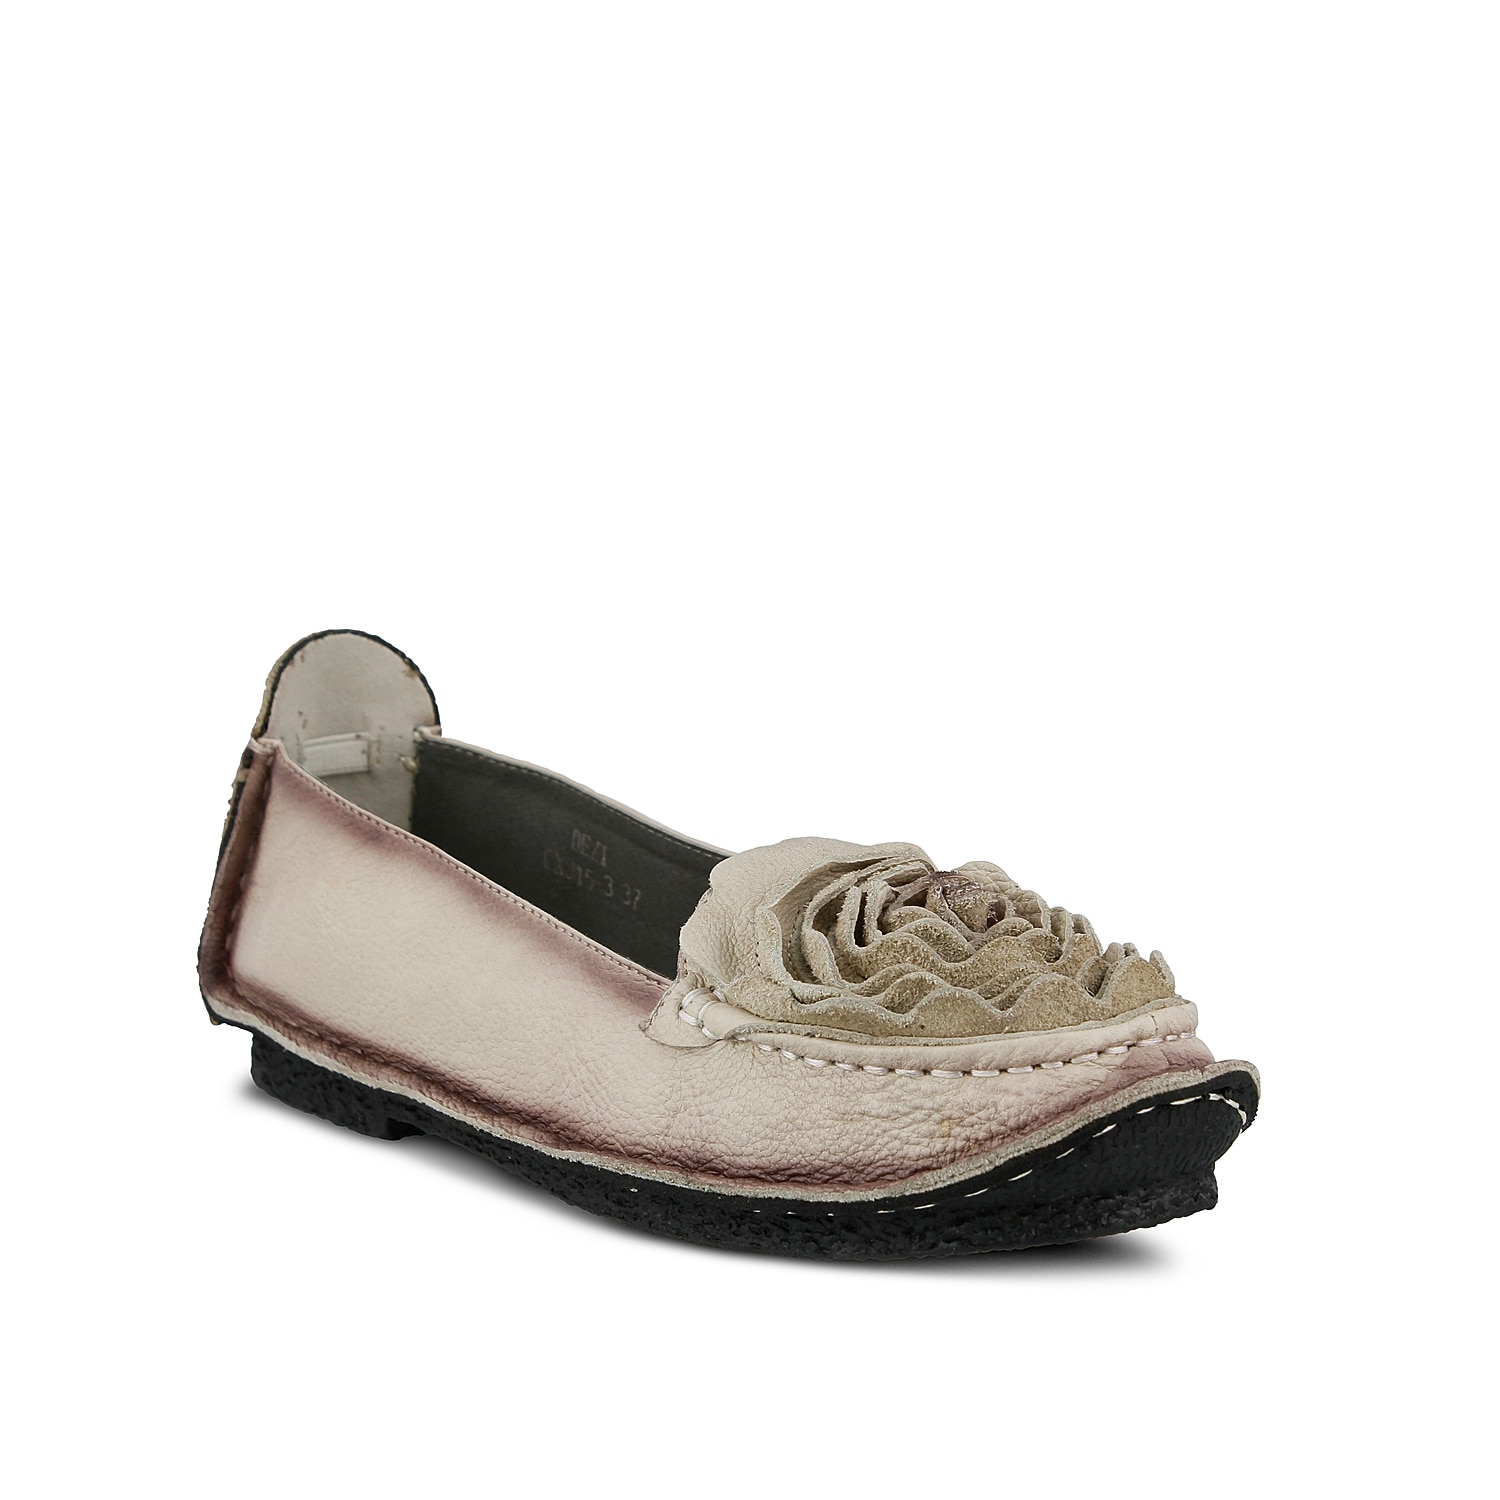 Spring Step Dezi Loafer - Women\\\'s - Taupe - Size EU 35 / US 5